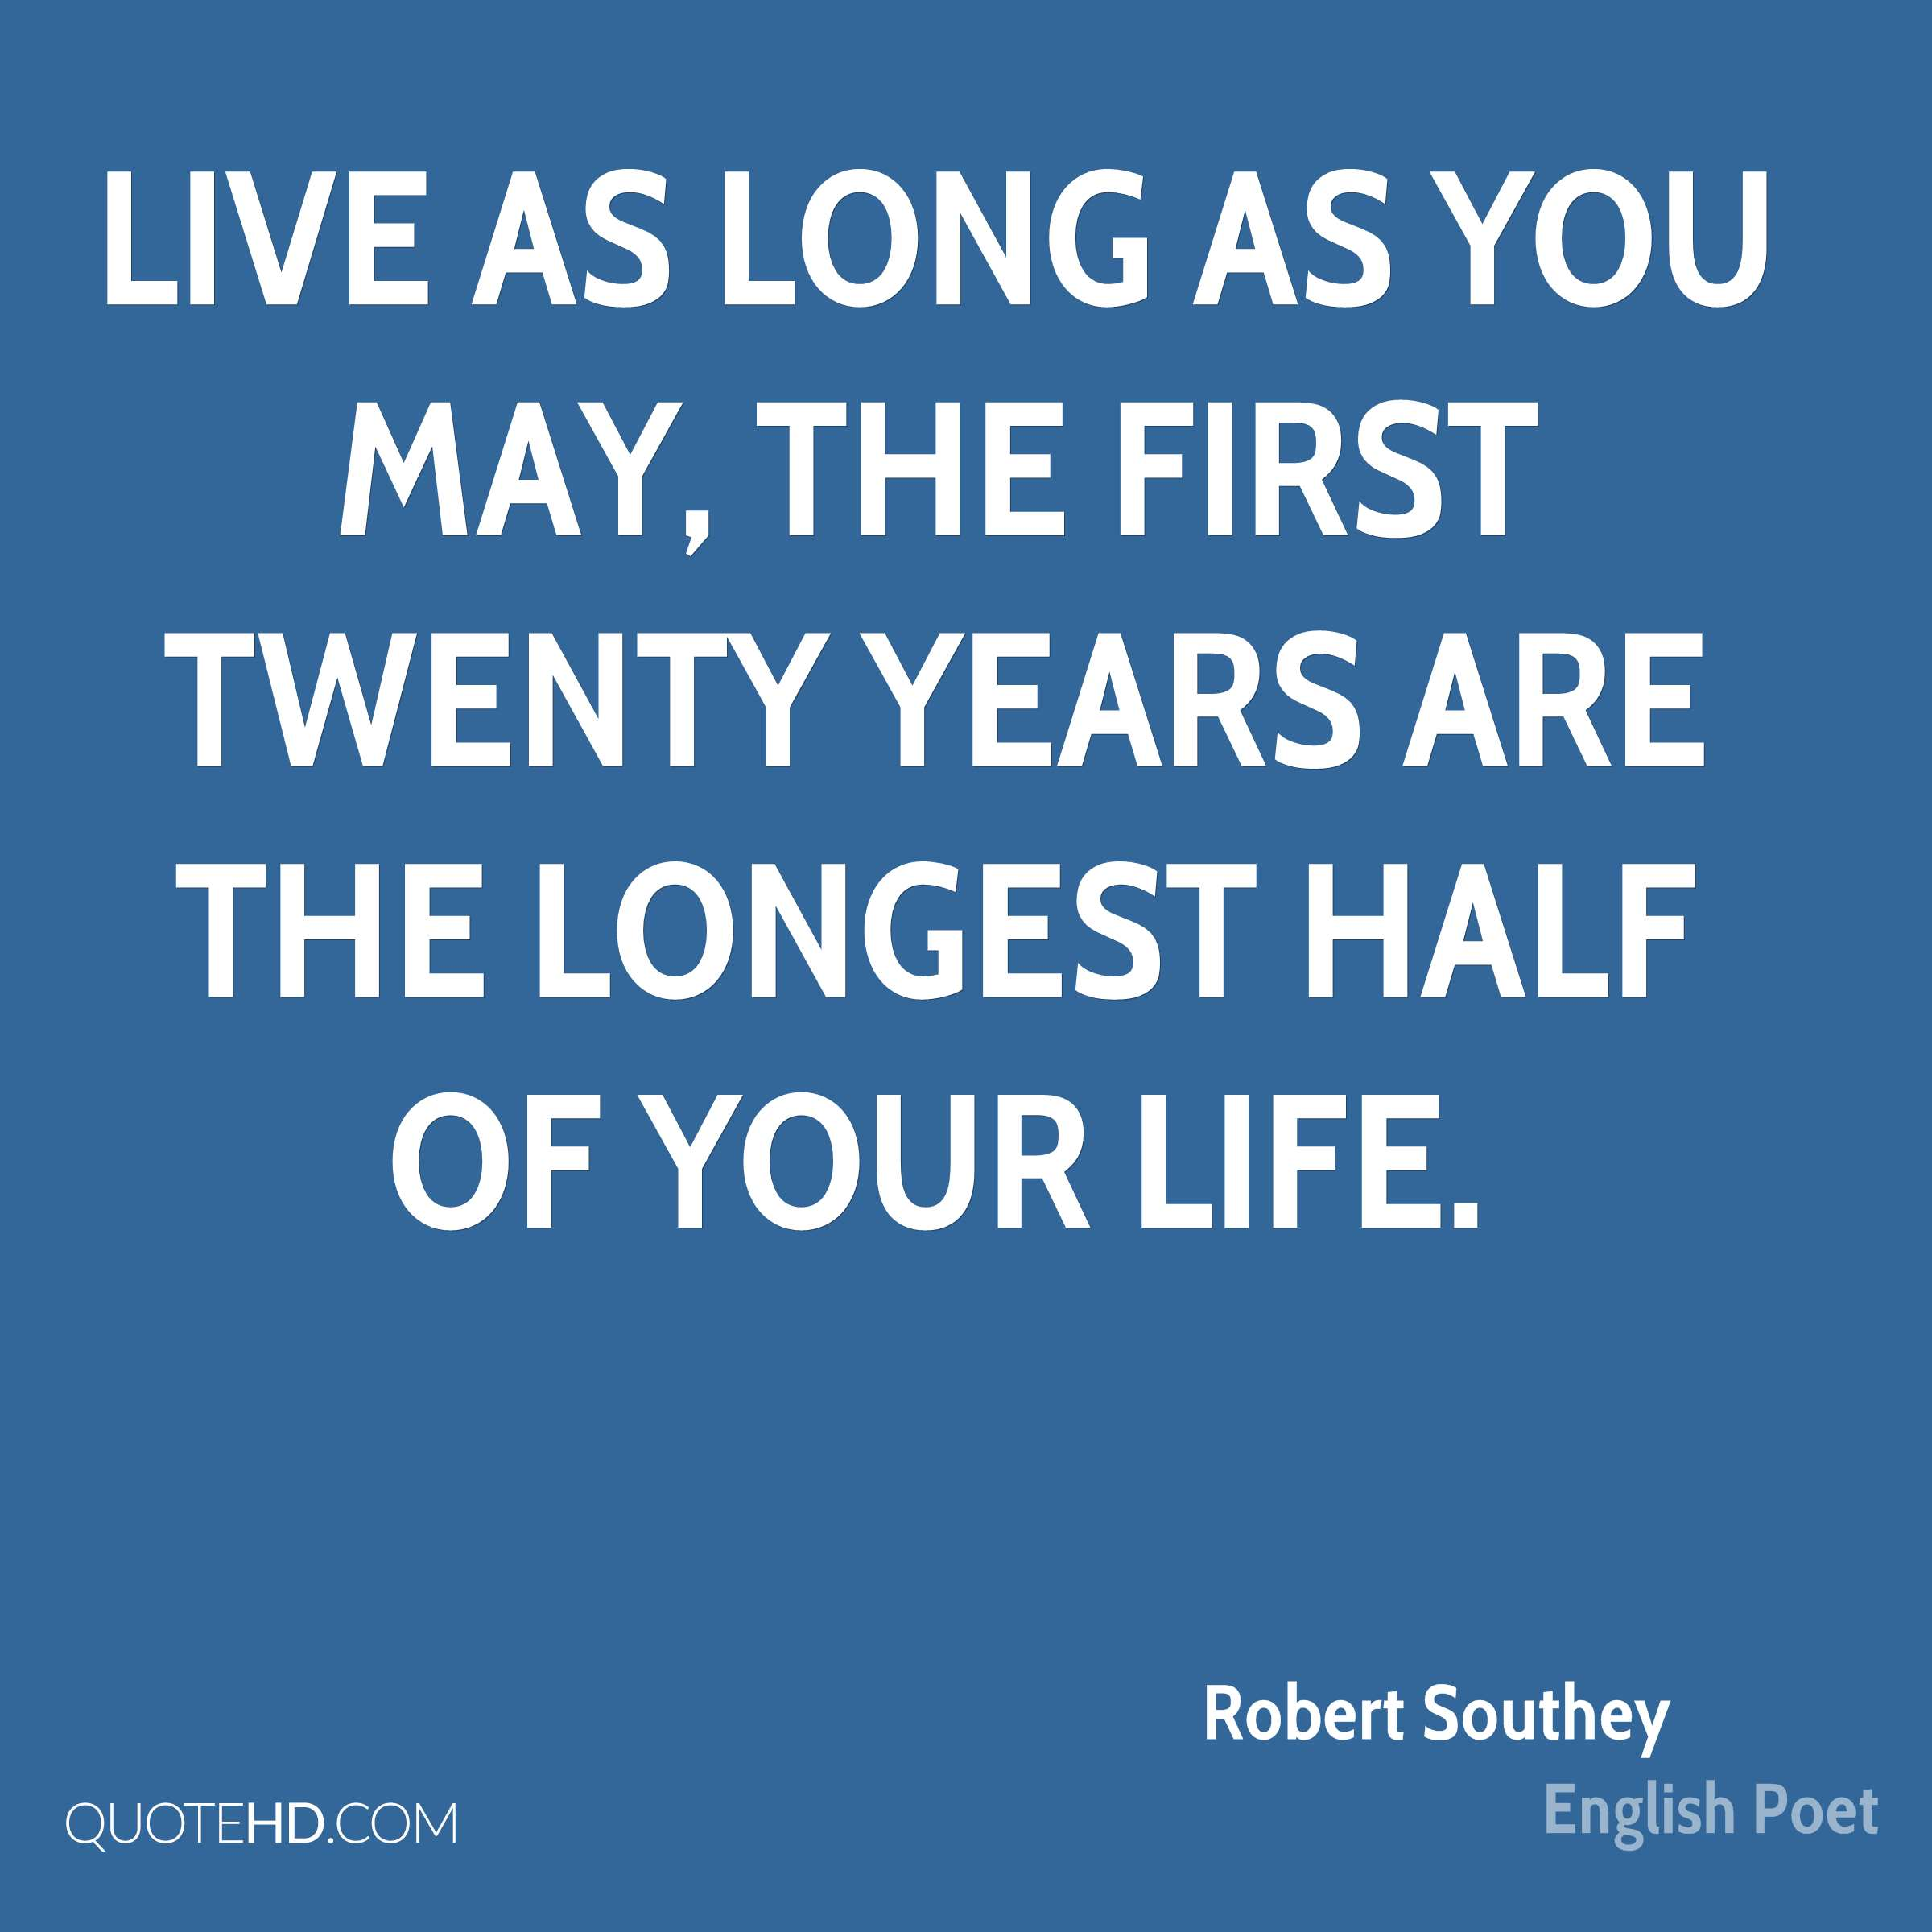 Live as long as you may, the first twenty years are the longest half of your life.